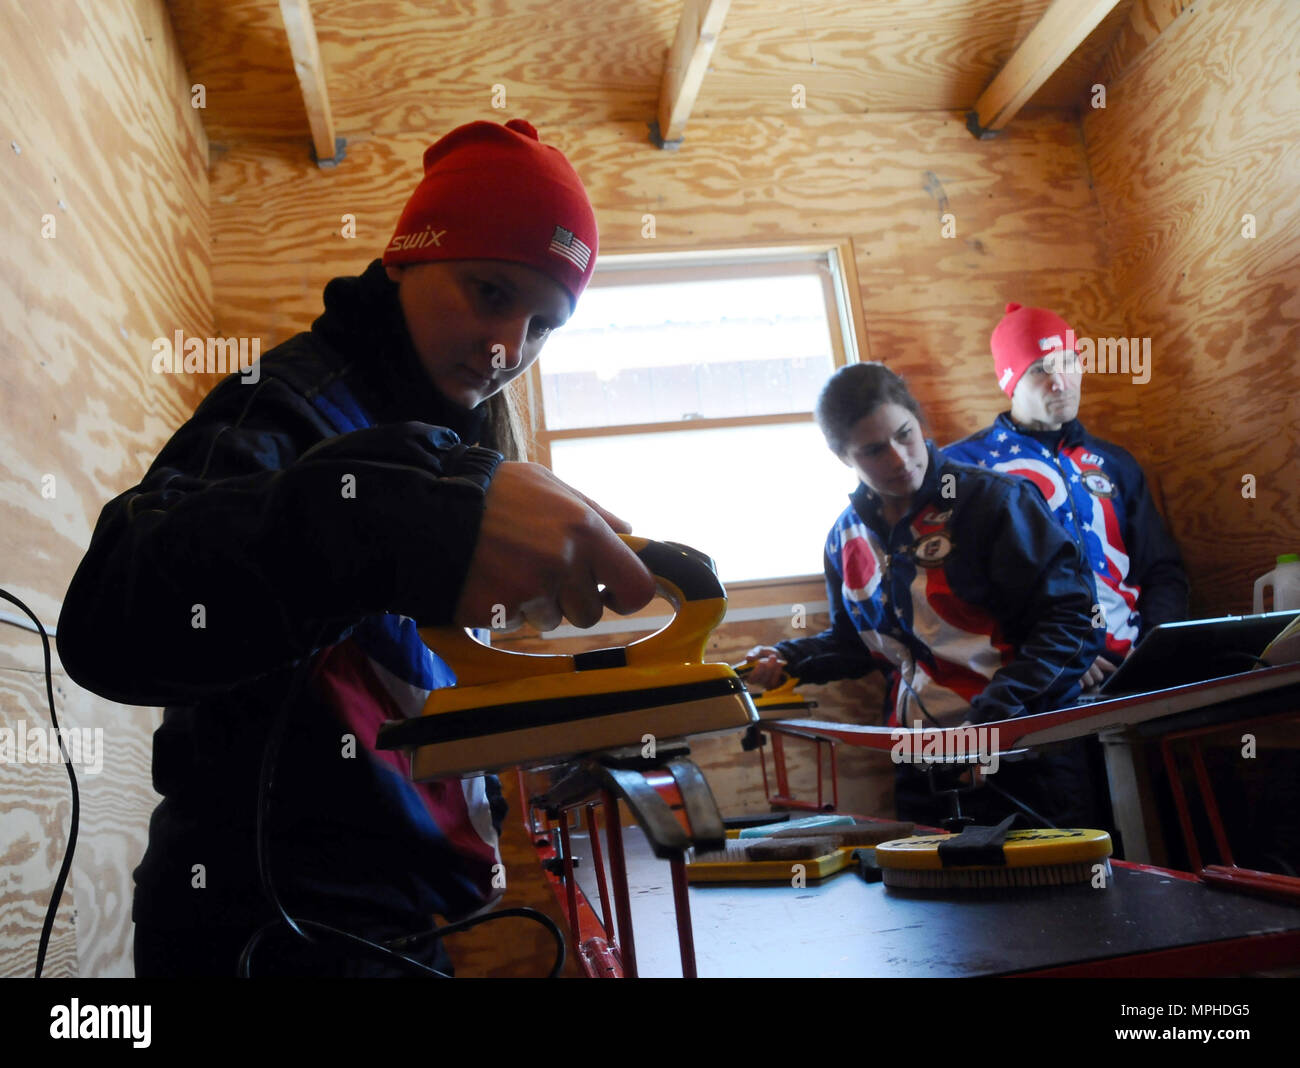 U.S. Army Spc. Lisa Roberts, a member of the Ohio National Guard, waxes her skis in preparation for her next race at Camp Ethan Allen Training Site, Jericho, Vt., March 4, 2017. Over 120 athletes from 23 different states are participating in the 2017 National Guard Bureau Biathlon Championships. (U.S. Army National Guard photo by 1st Lt. Aaron Smith) - Stock Image